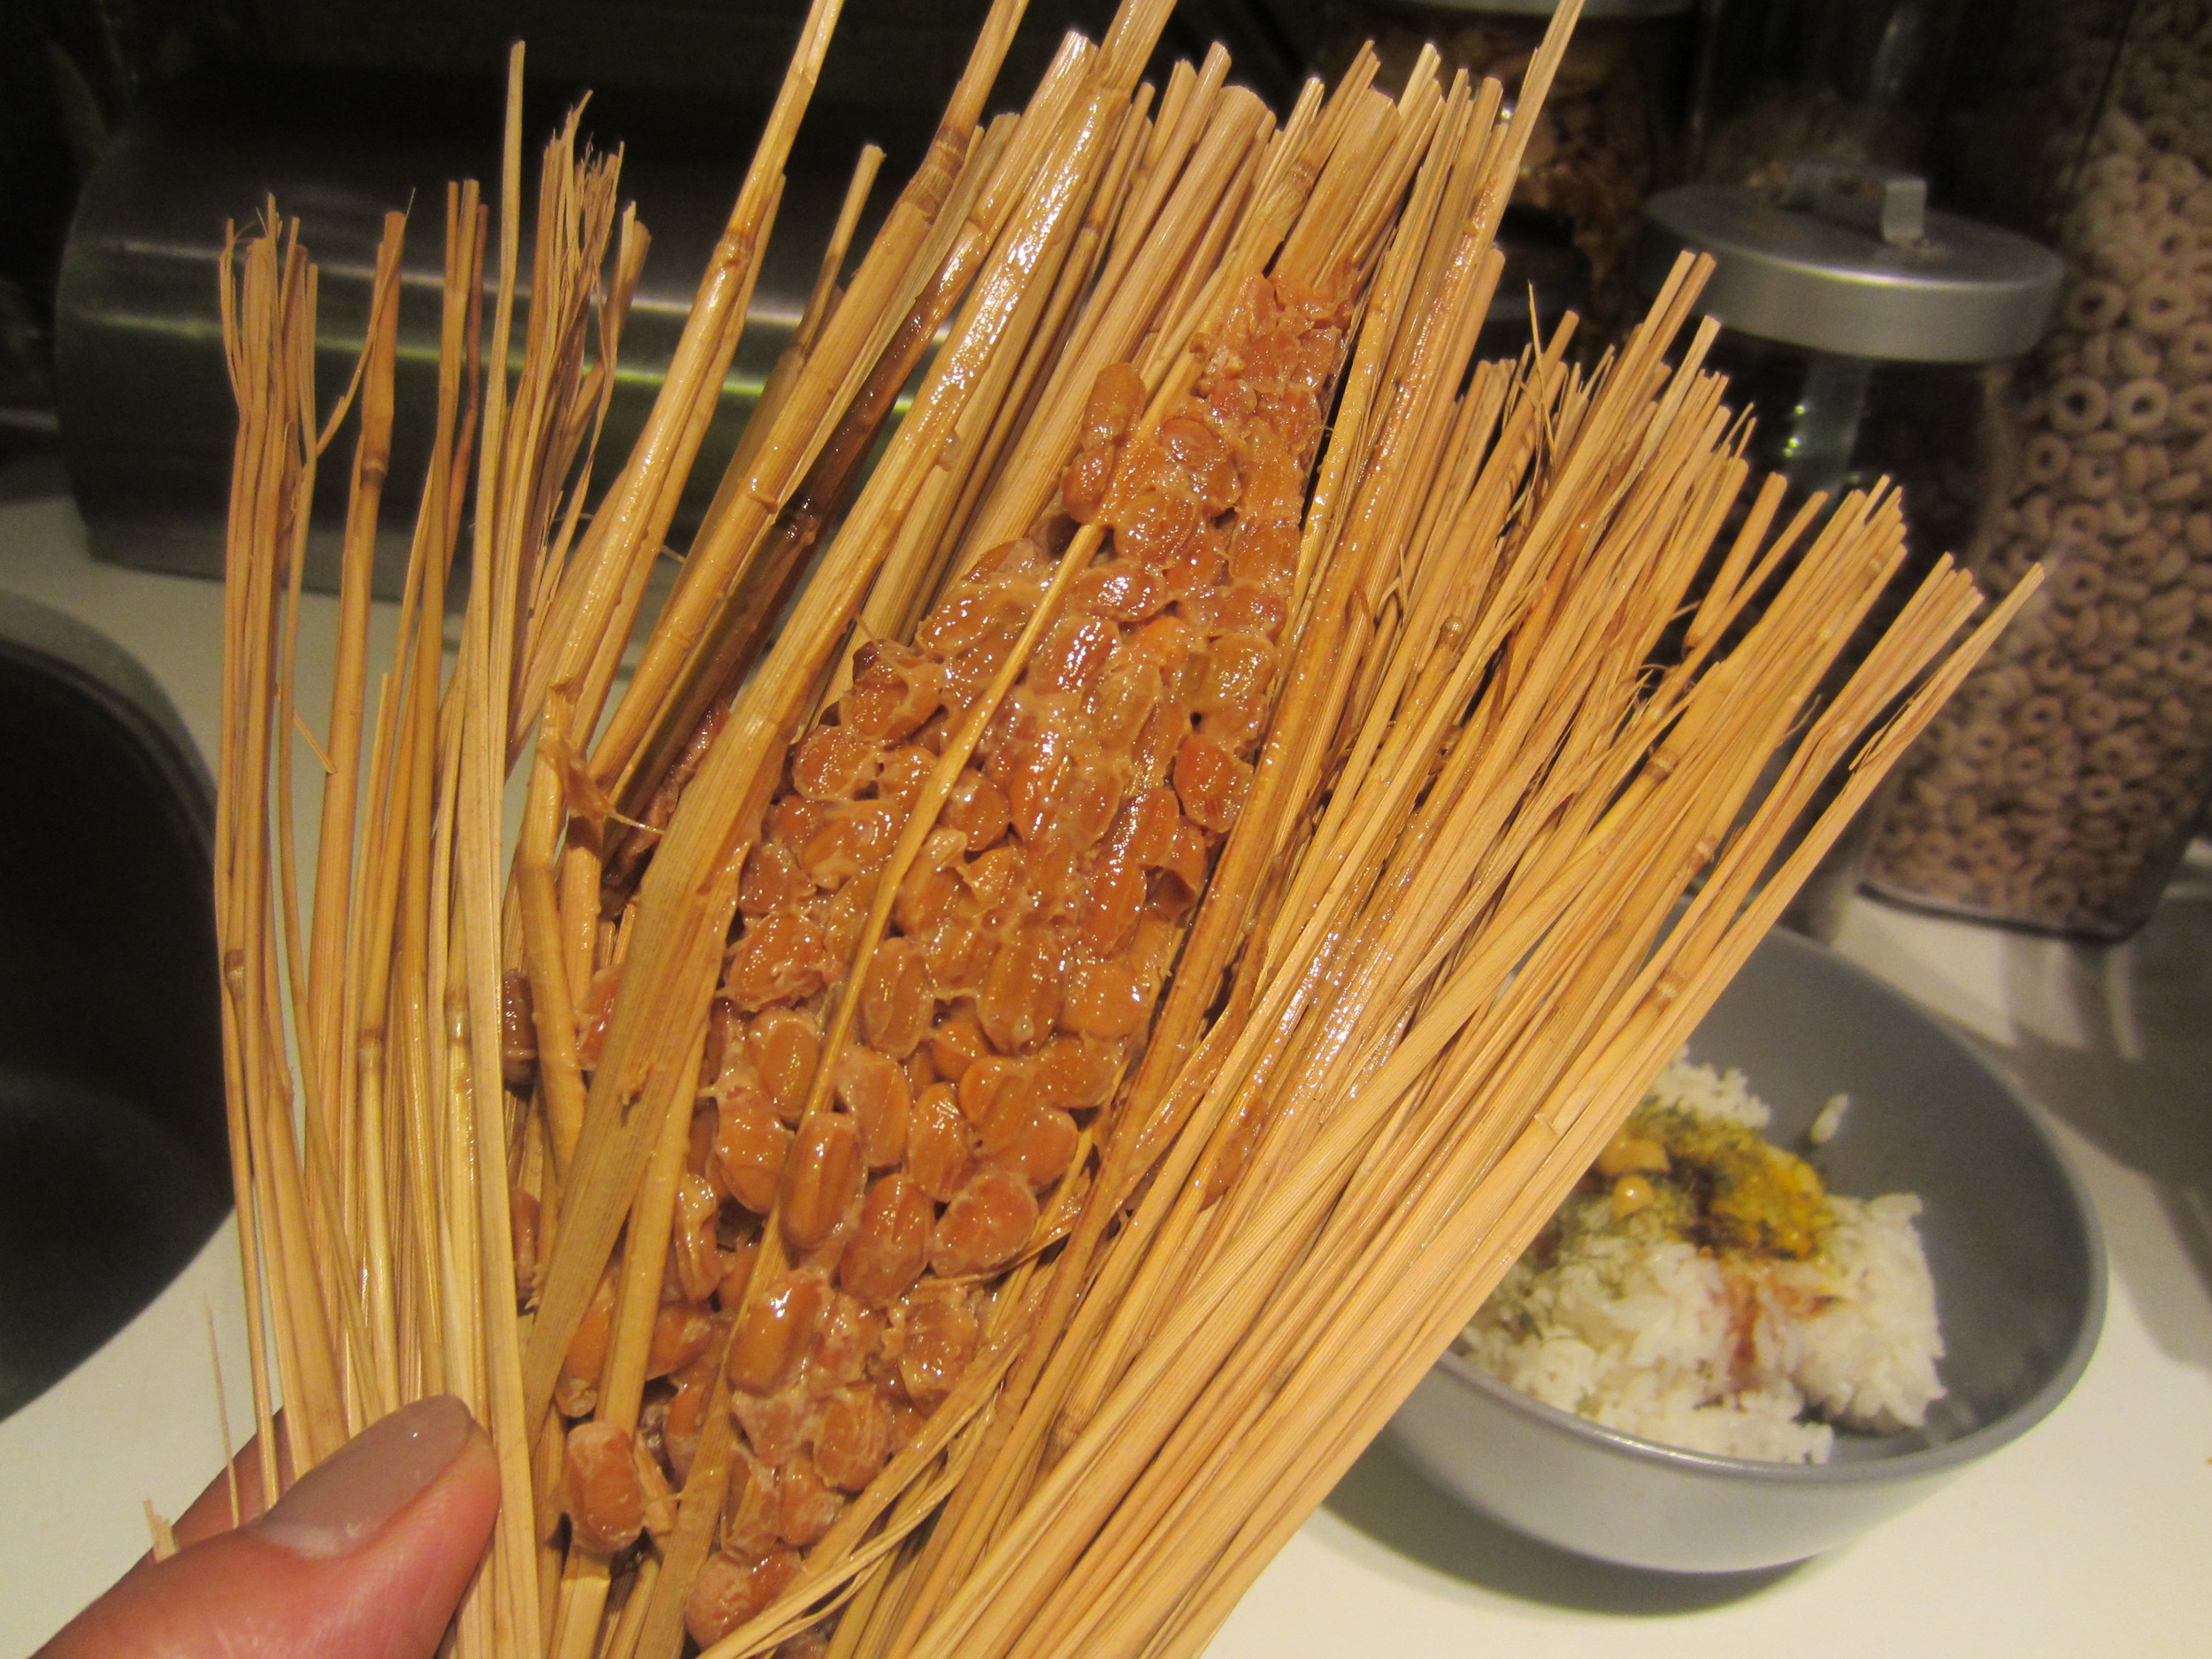 Natto wrapped traditionally in rice straw, having survived a trans-Pacific flight and avoided TSA, wonderfully fragrant of earth and grass.